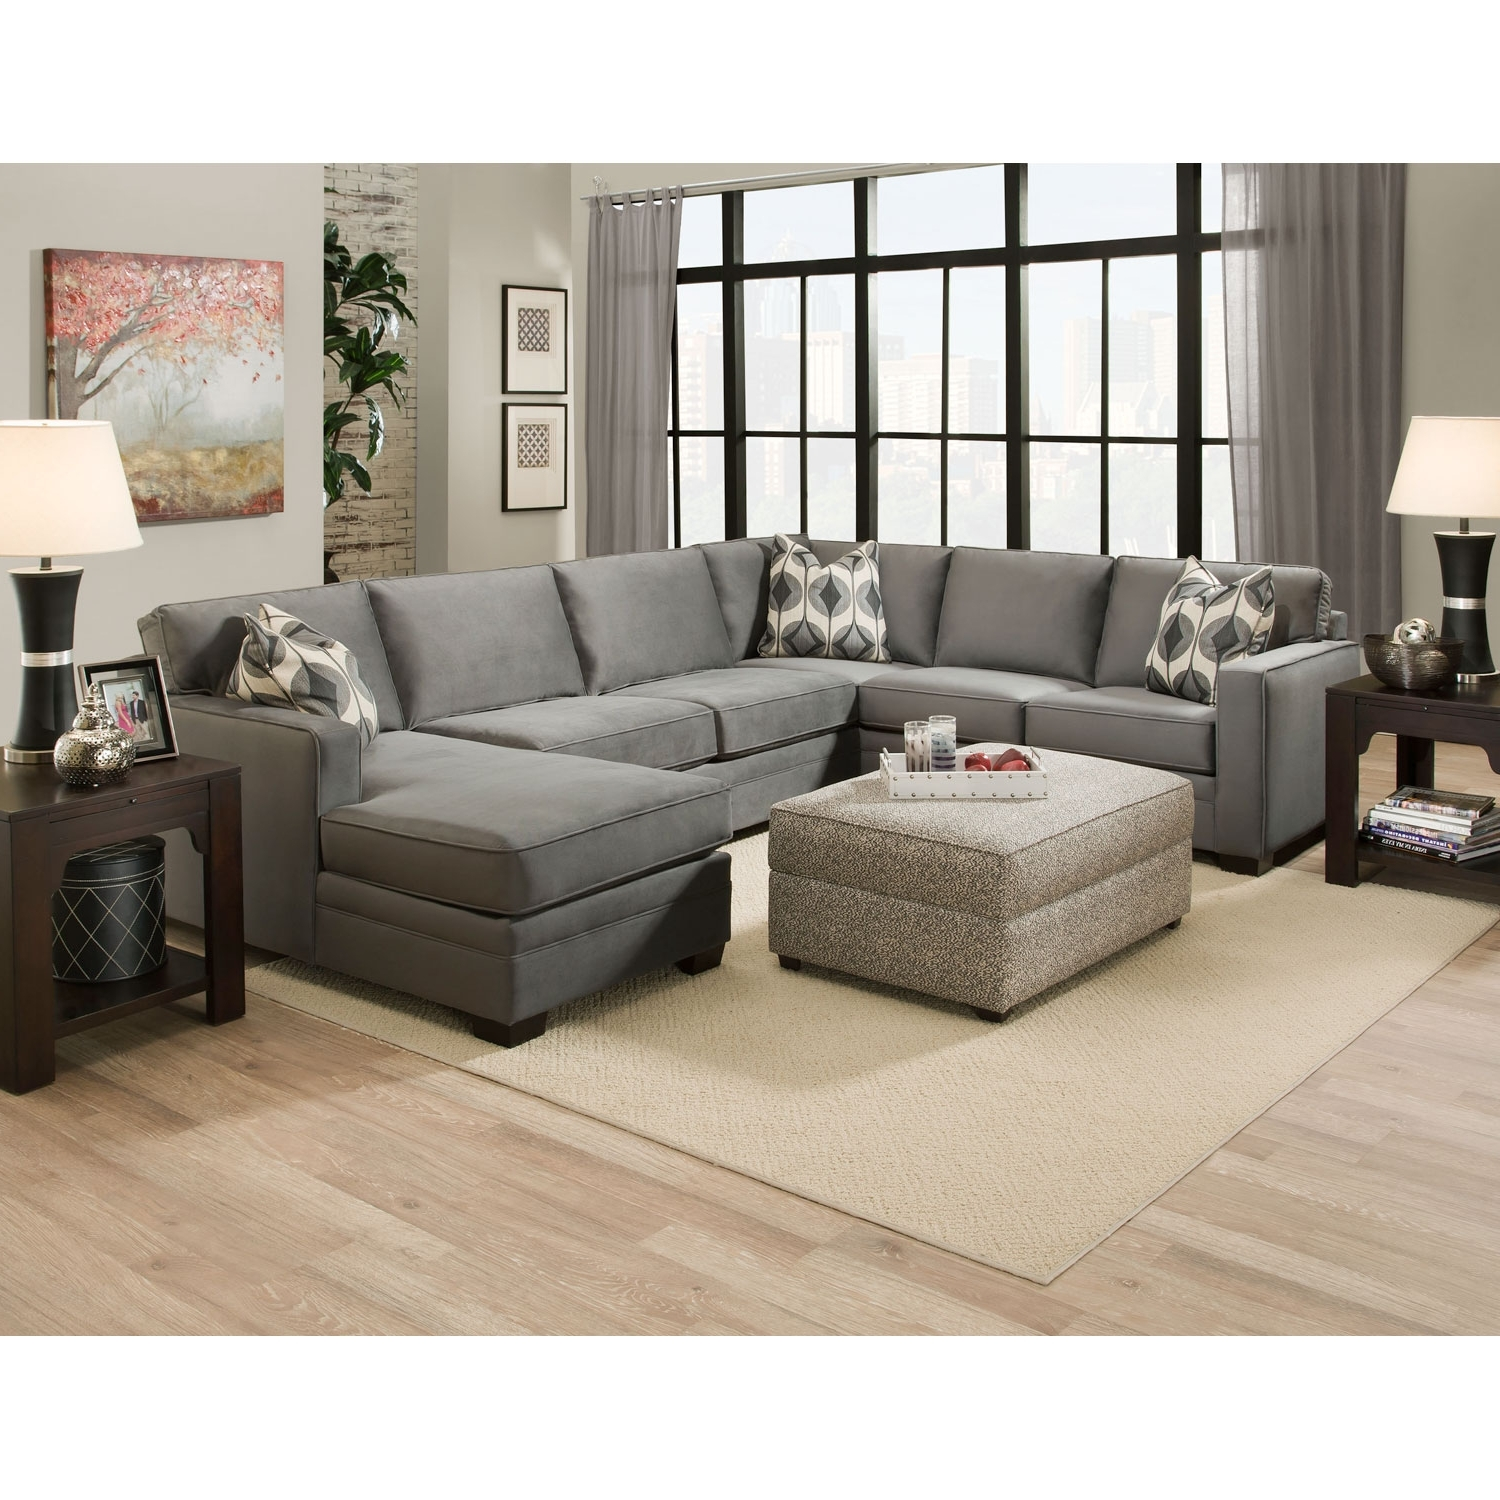 U Shaped Sectionals With Chaise Regarding Most Current Gray Extra Large U Shaped Sectional Sofa With Chaise And Accent (View 13 of 15)